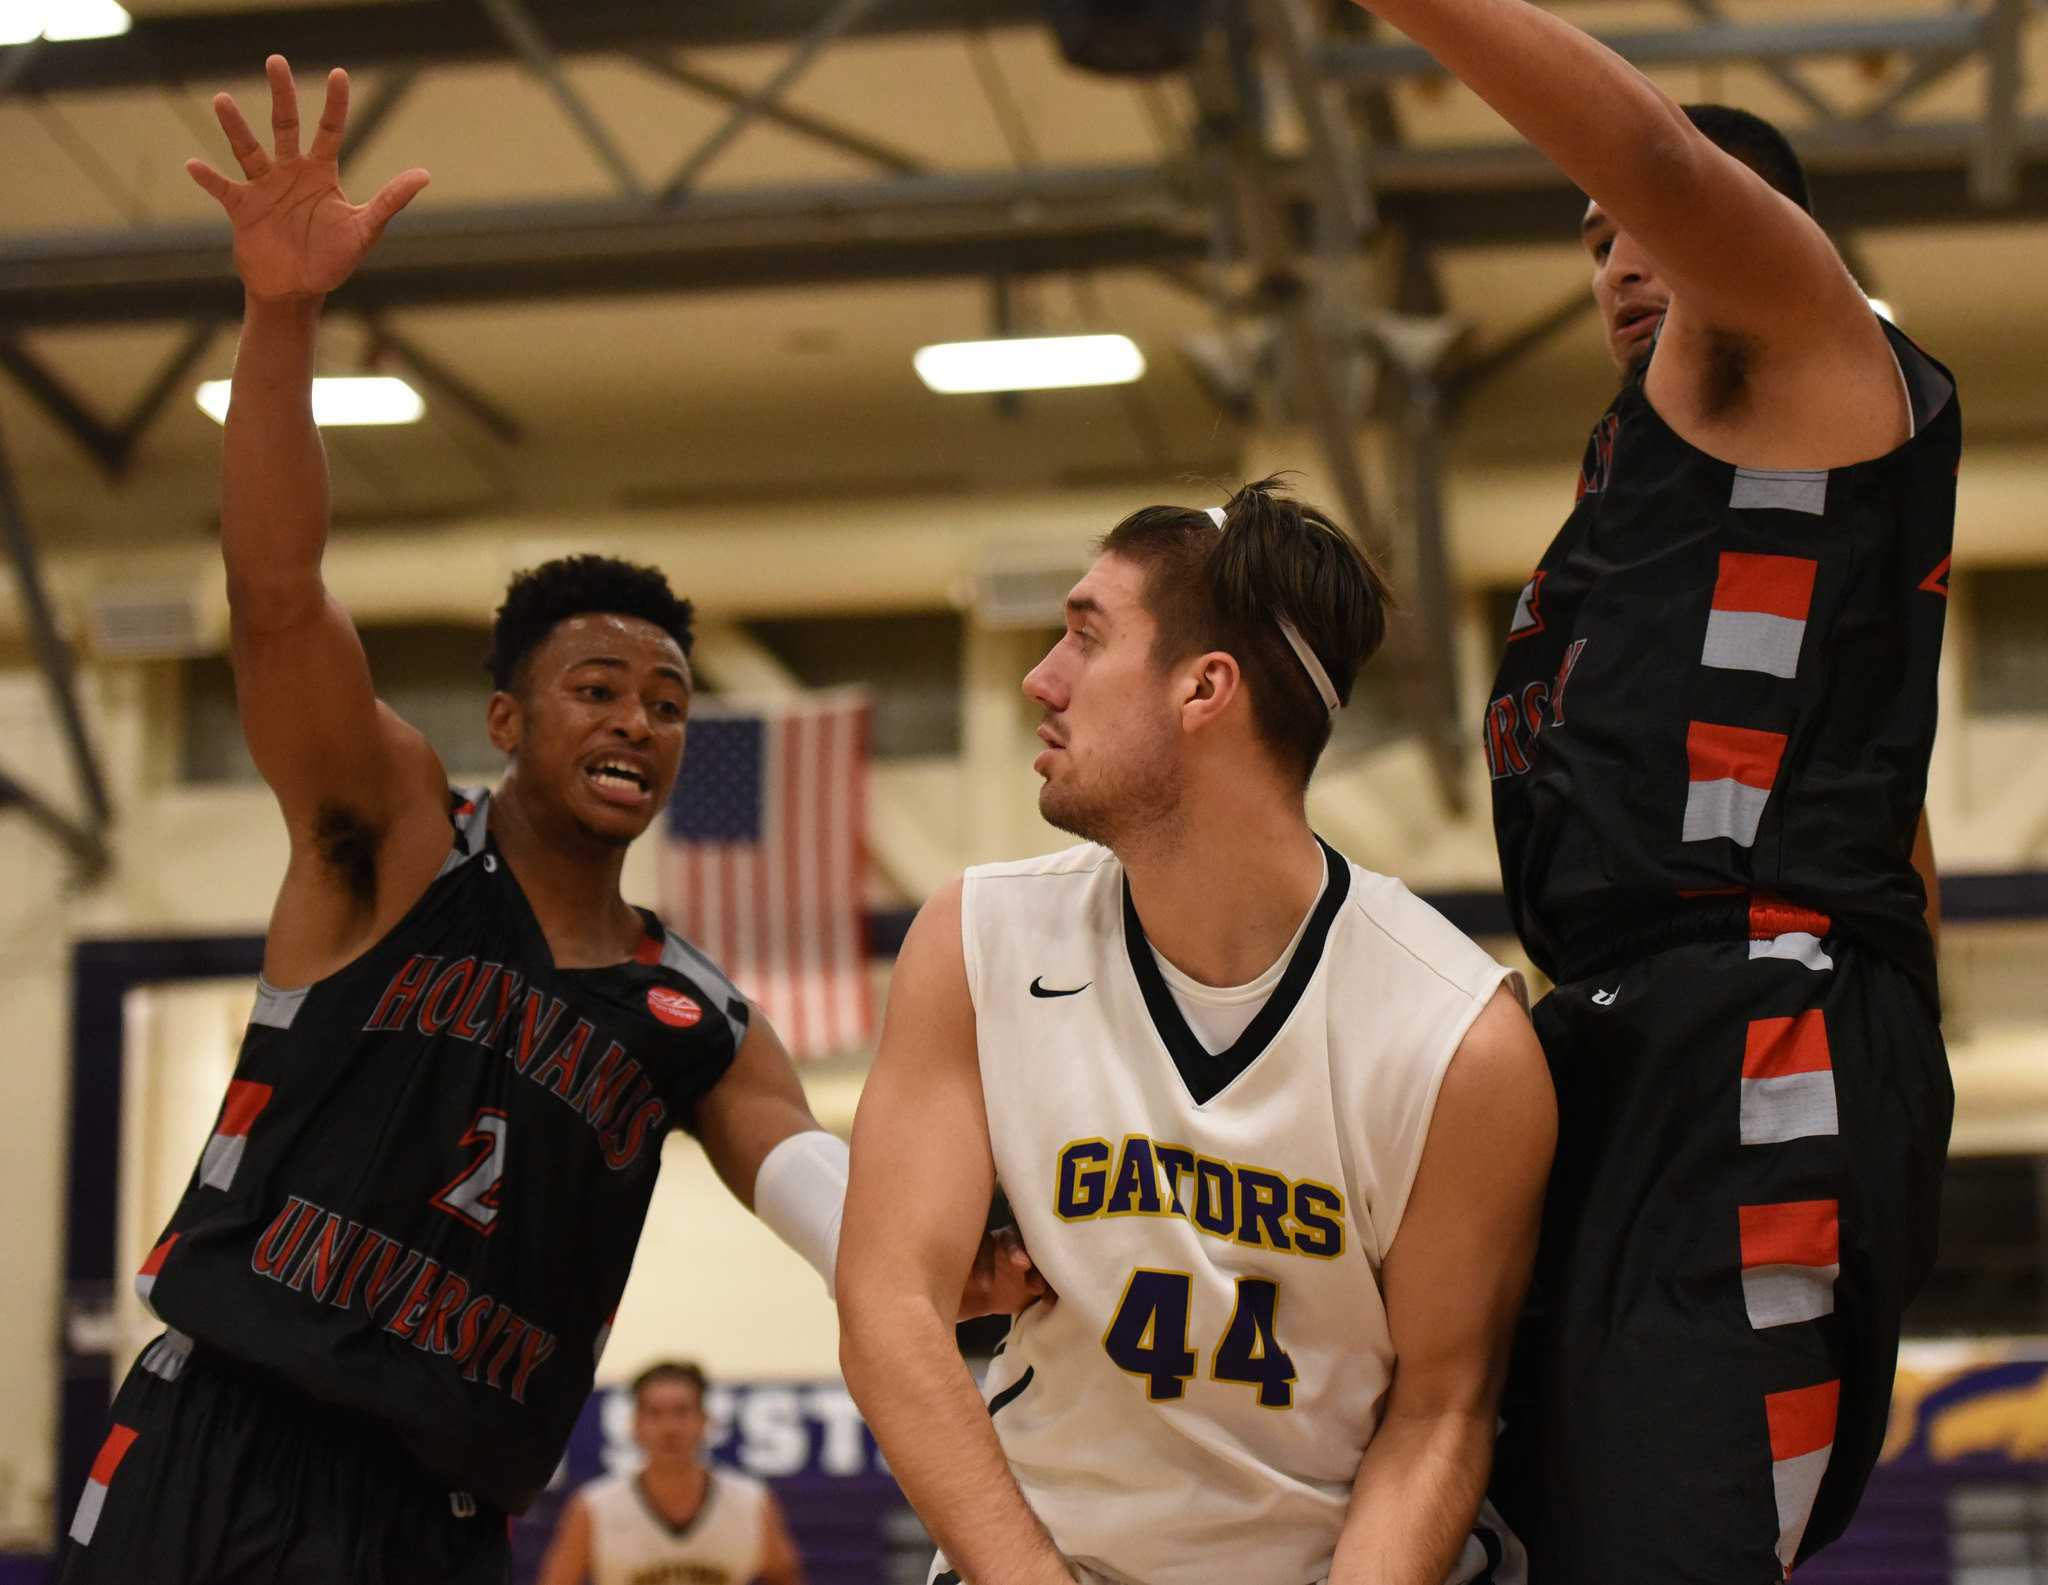 SF State Gators forward Damien Rance (44) protects the ball as he looks to pass in a game against the Holy Names Hawks at The Swamp Gymnasium Tuesday, Nov. 24. (David Henry / Xpress)